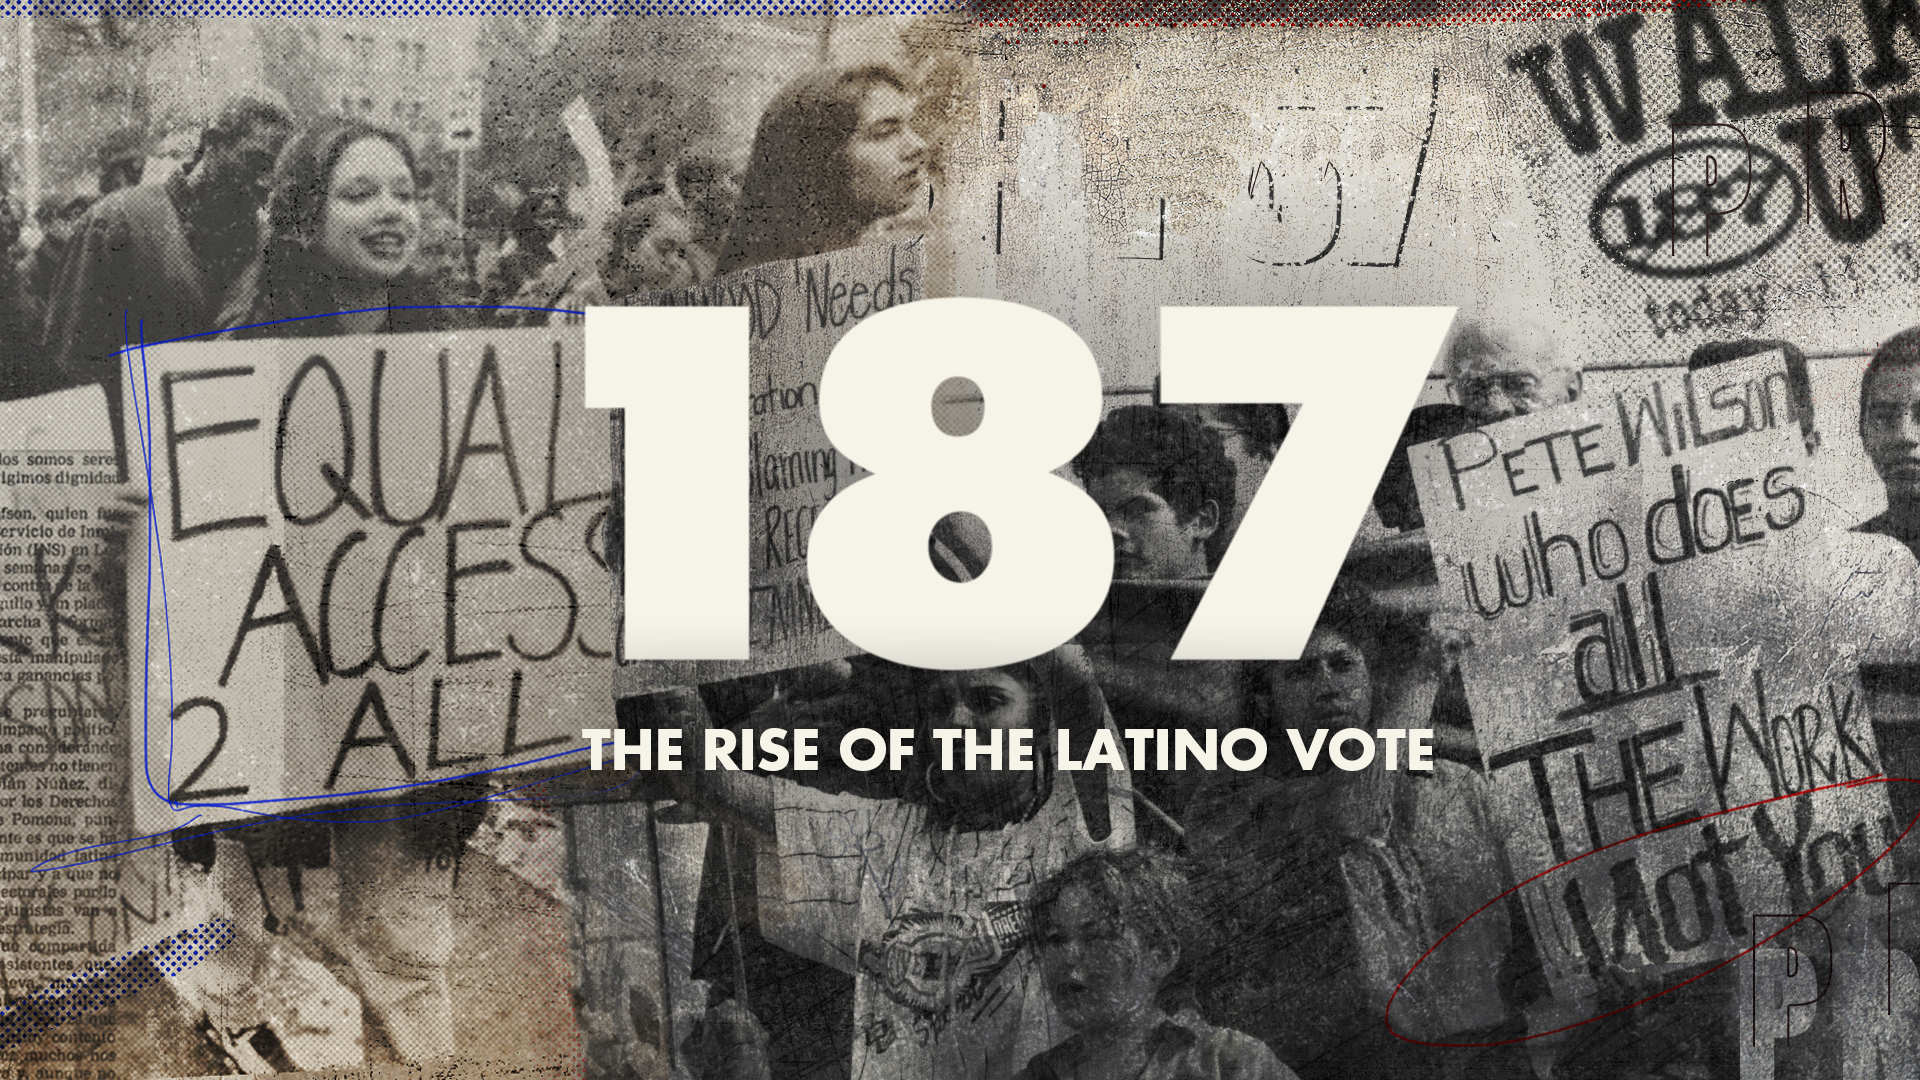 187: THE RISE OF THE LATINO VOTE key art